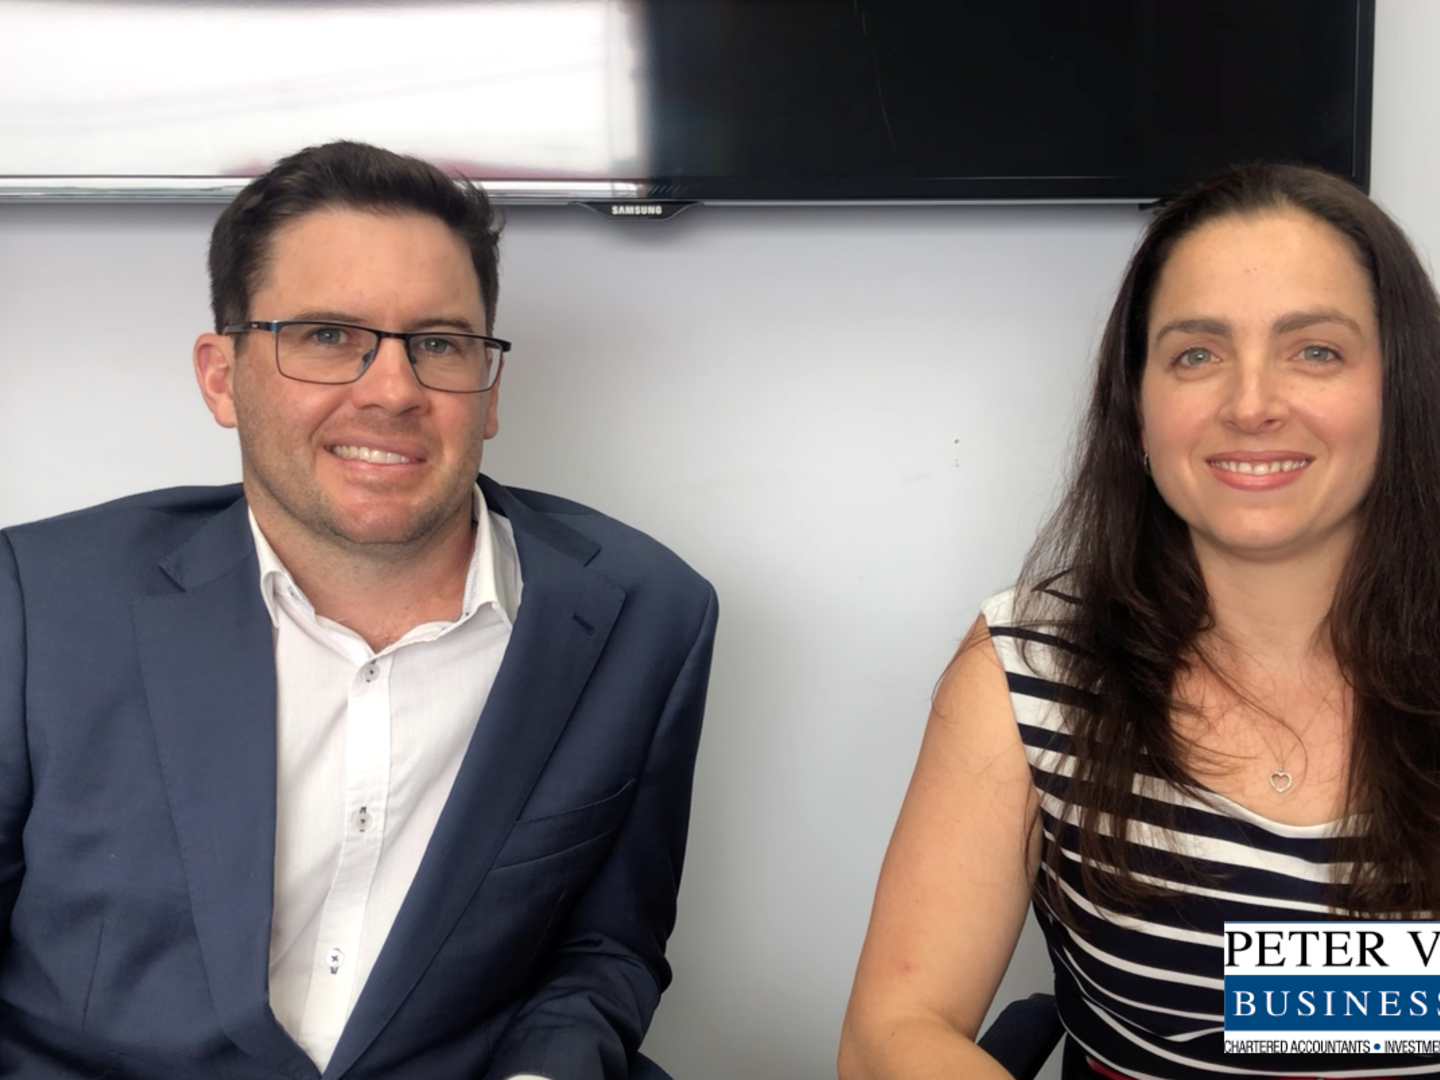 In this brief video, we outline the Land Tax changes that are being enforced in New South Wales and how this will affect clients. We also discuss the Super Guarantee Amnesty that has once again been put back on the government agenda.